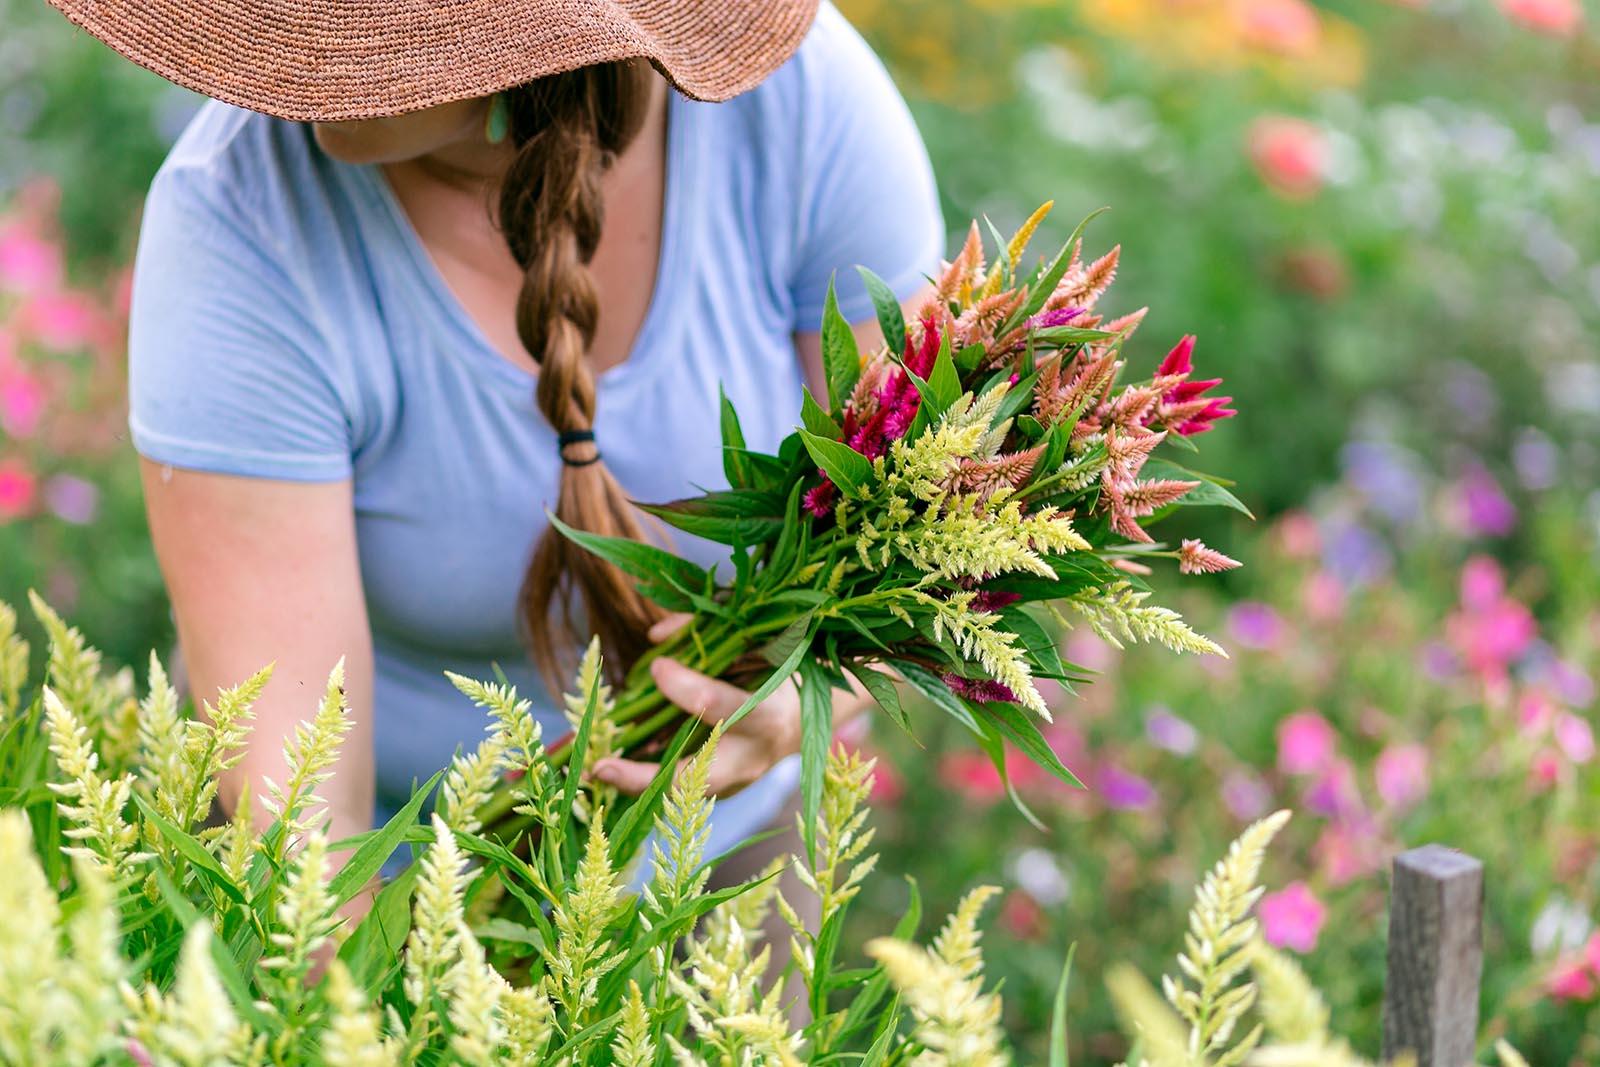 headshot of woman picking flowers, determine photography pricing